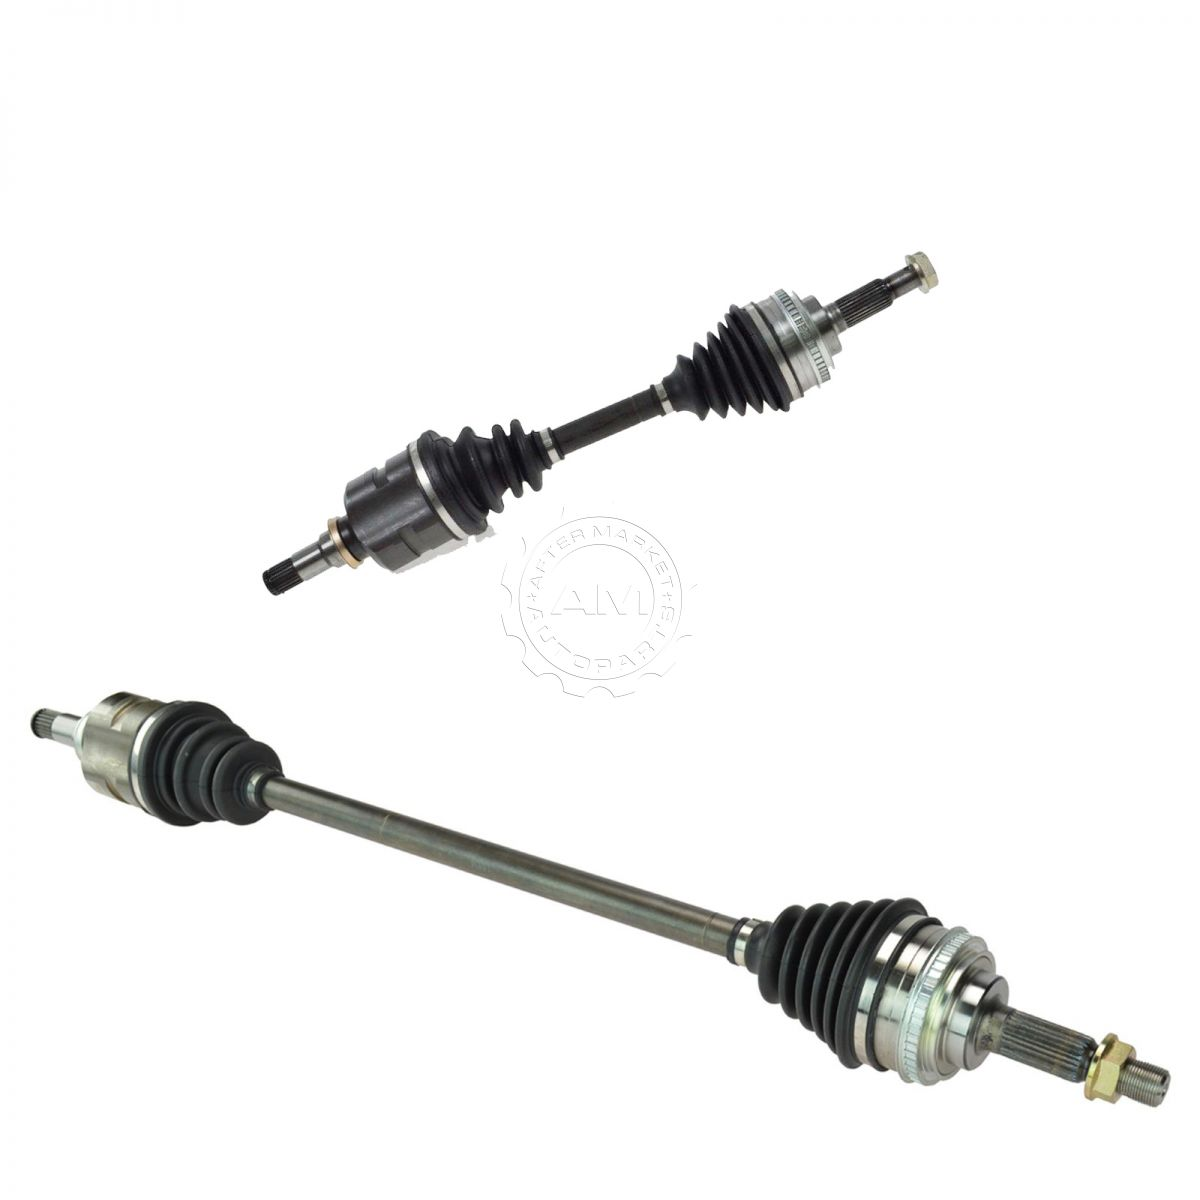 Toyota Celica 1994 1997 Front Cv Axle Shaft: Front CV Joint Axle Shaft Left & Right Pair Set NEW For